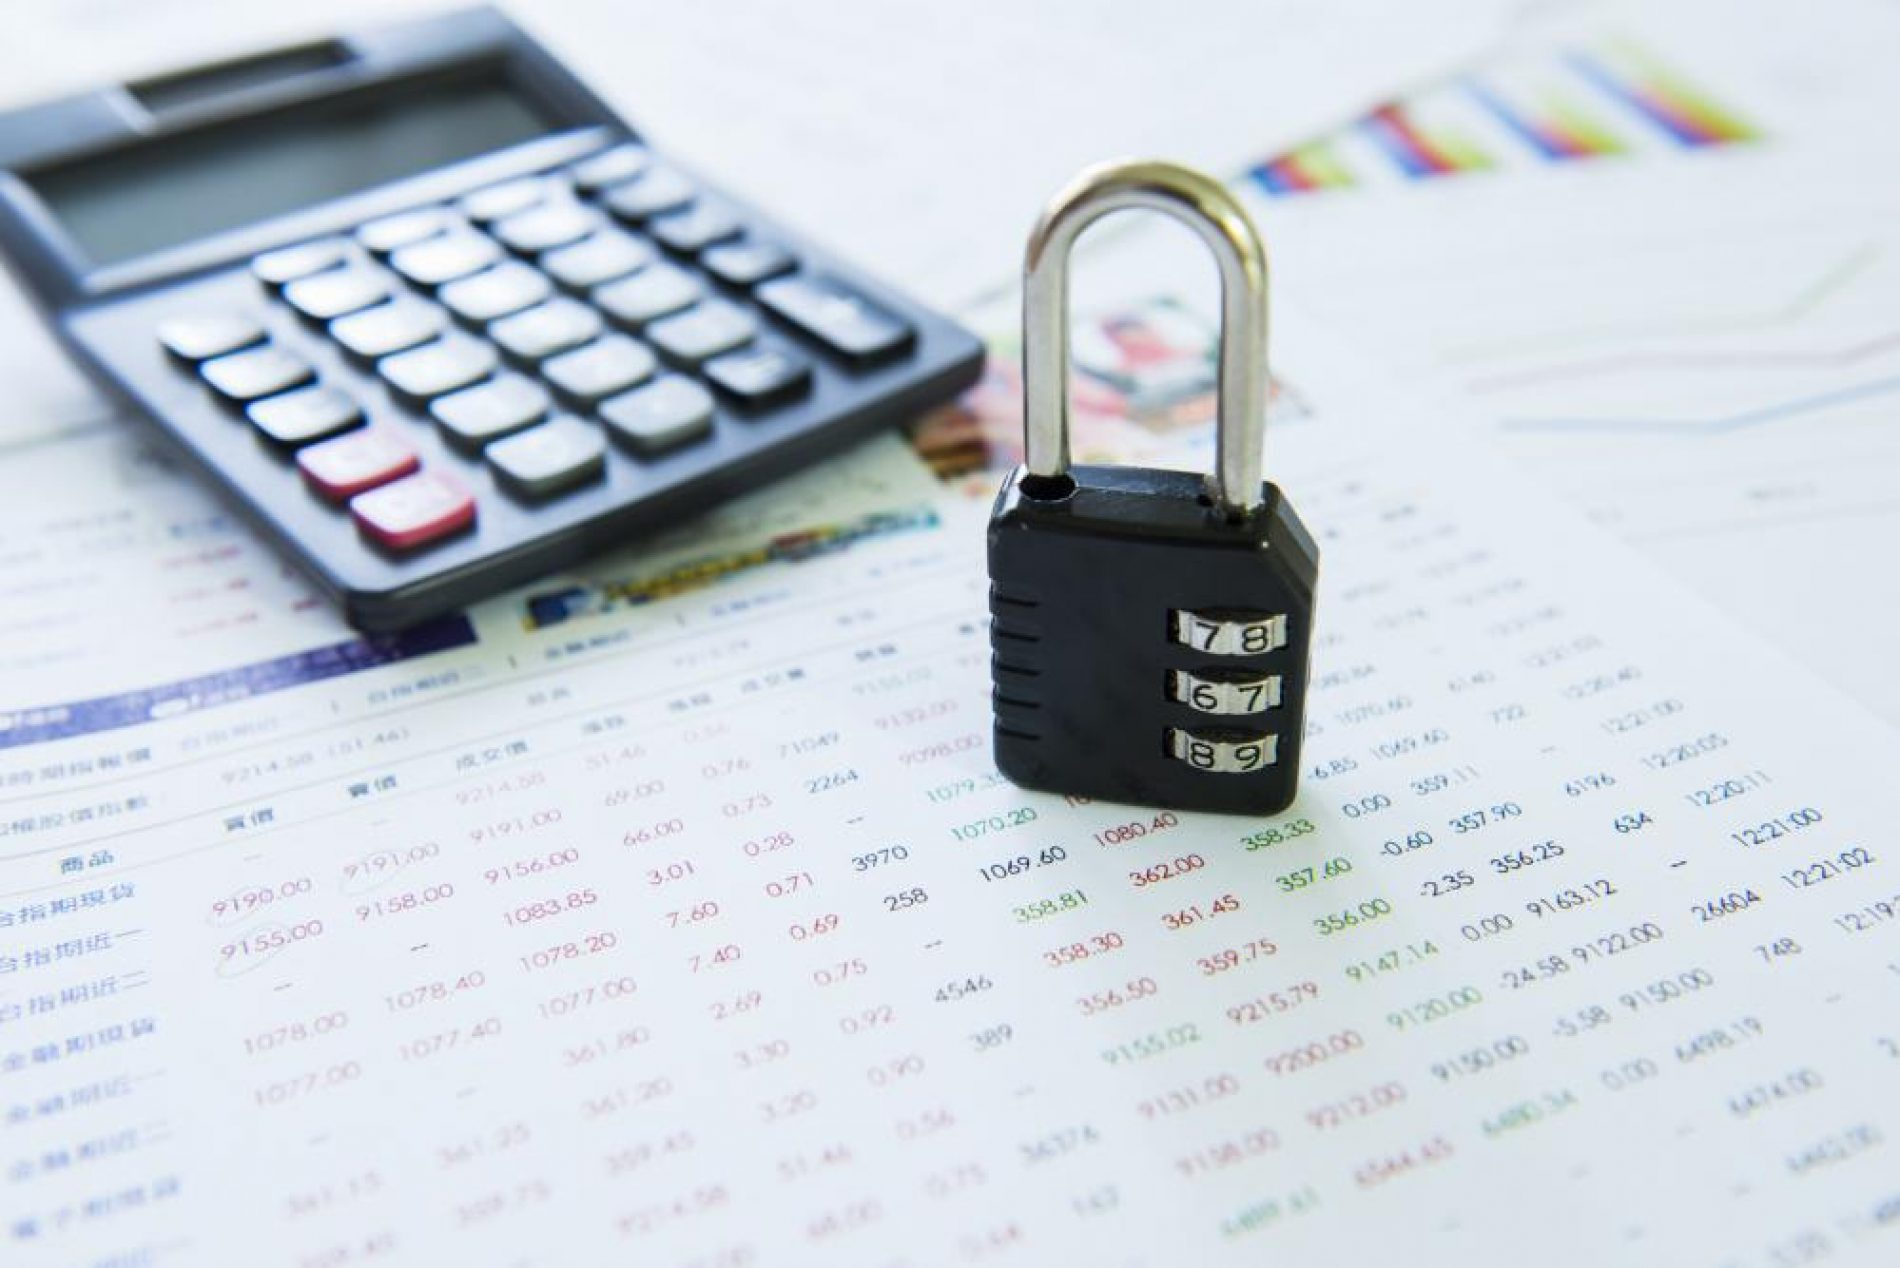 The Employee Trade Secrecy Agreement: What It Means For Your WFOE in China